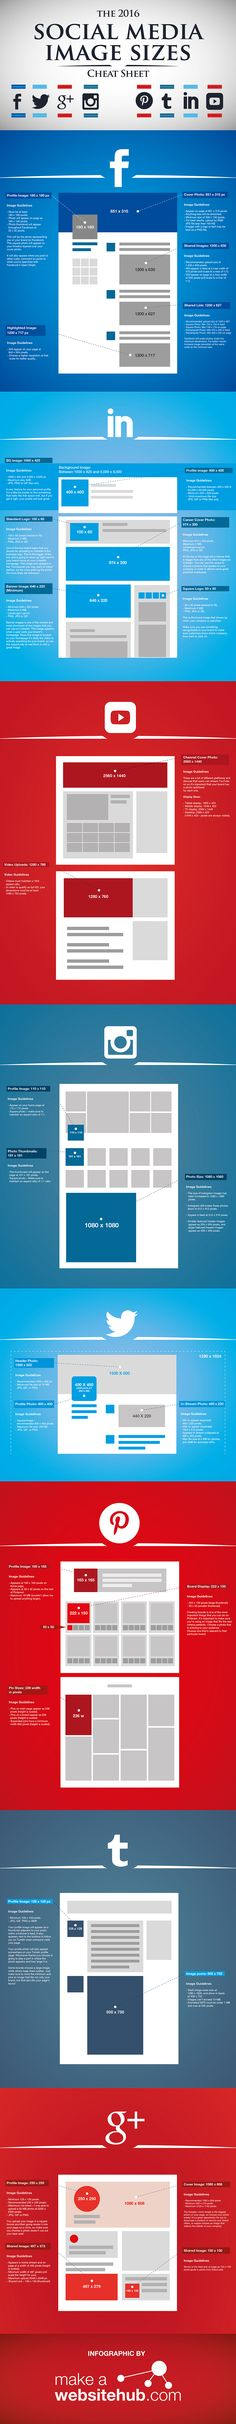 The 2016 Social Media Image Sizes Guide